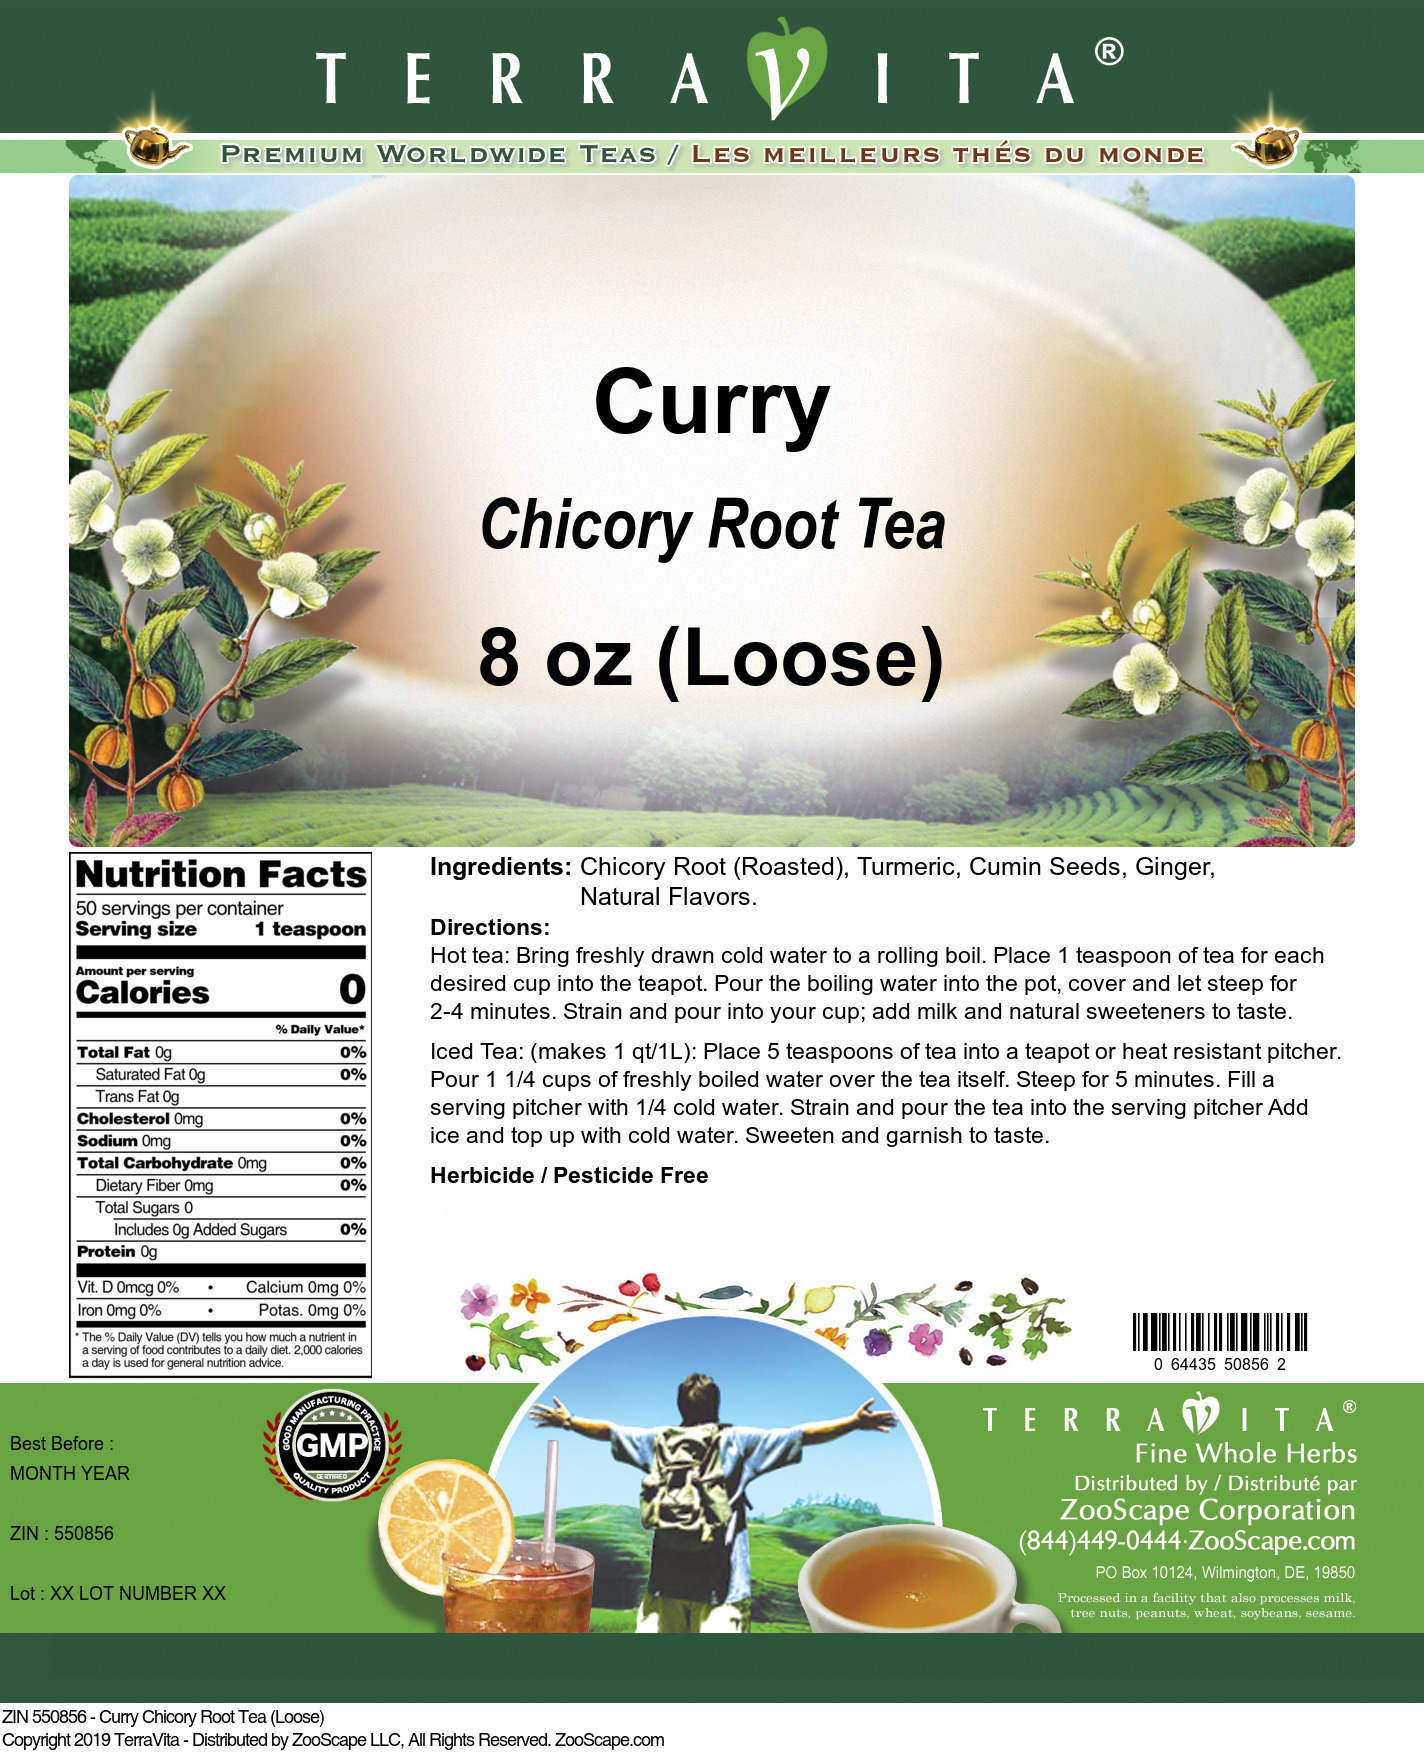 Curry Chicory Root